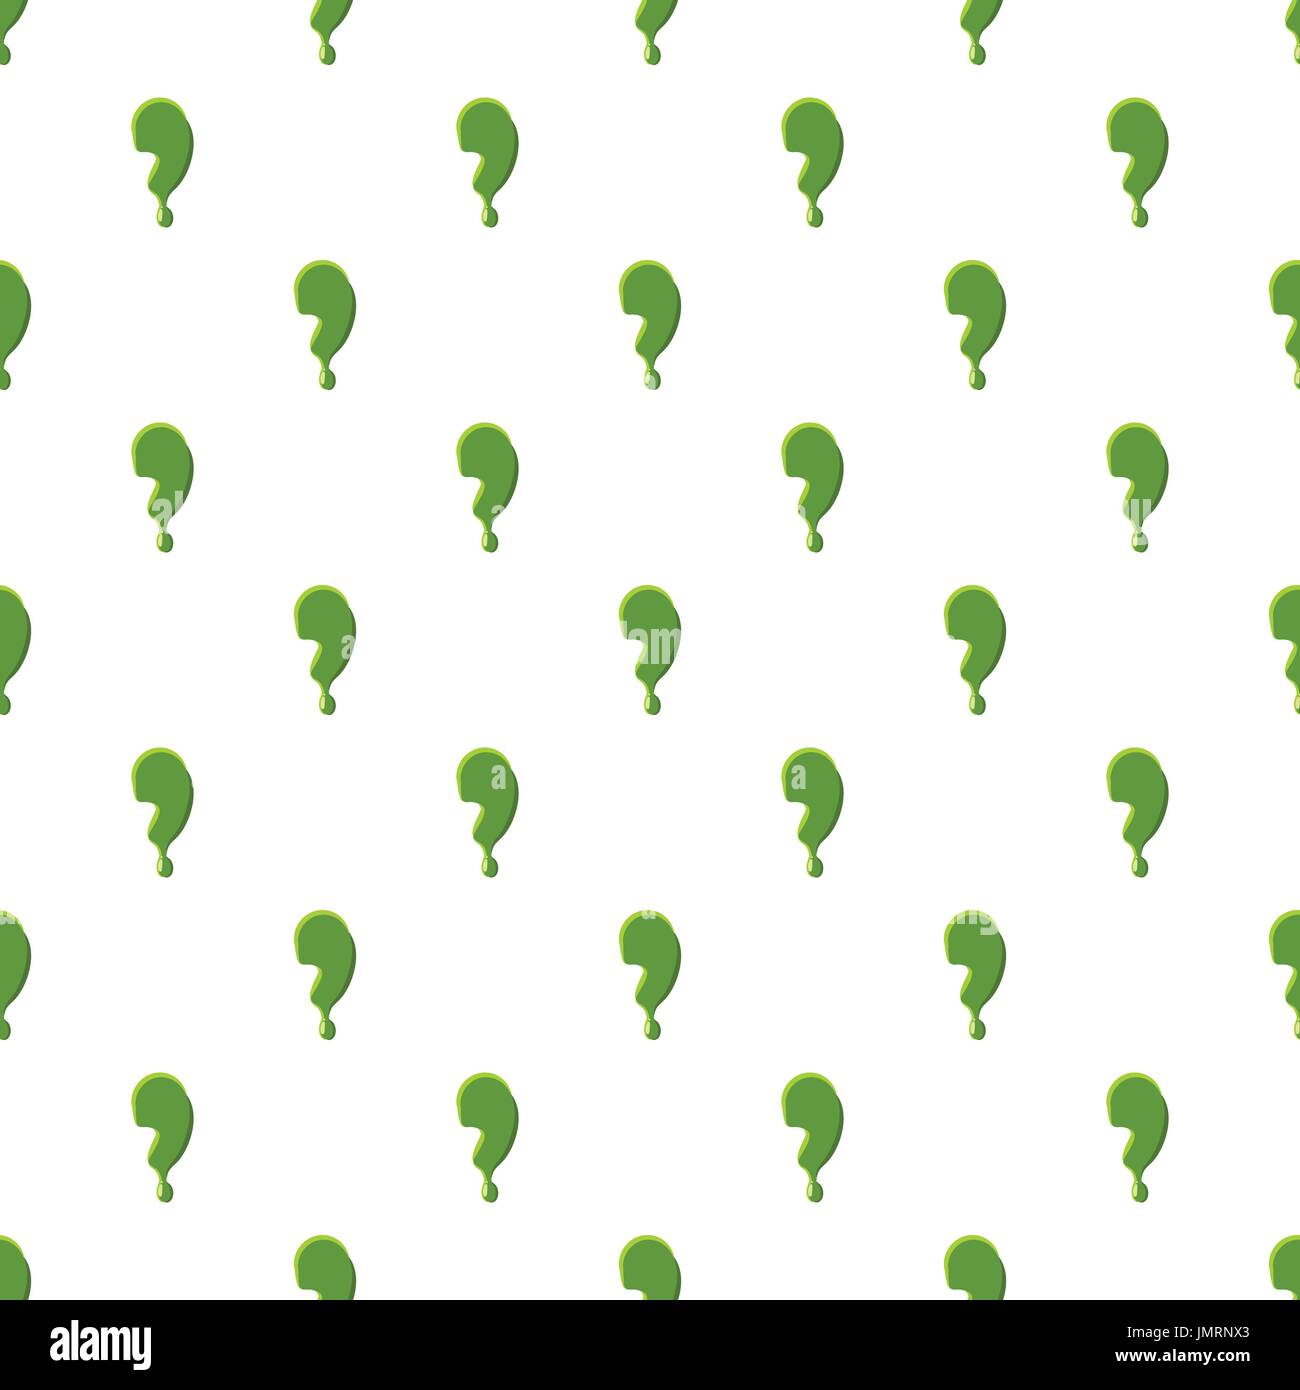 Punctuation mark comma from latin alphabet with numbers and punctuation mark comma from latin alphabet with numbers and symbols made of green slime font can be used for halloween design and other purposes buycottarizona Choice Image